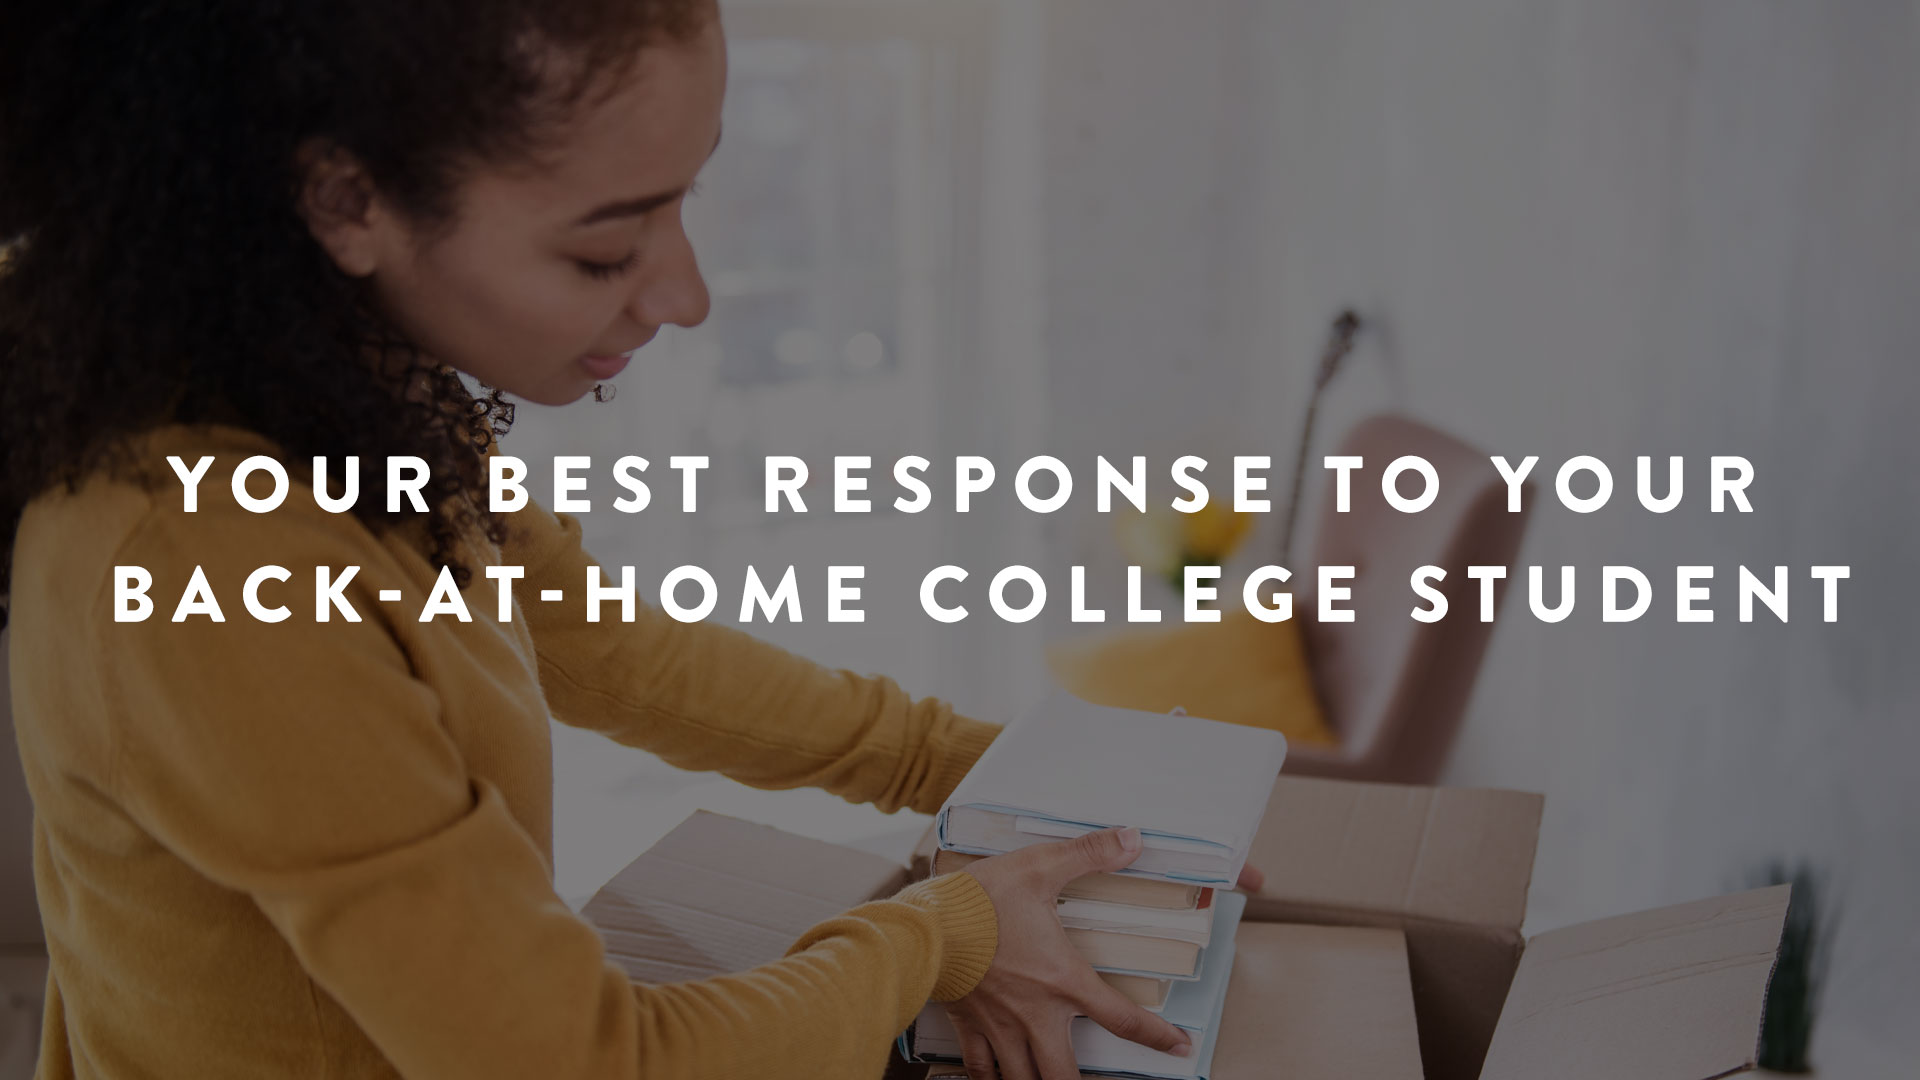 Your Best Response to Your Back-at-Home College Student | Parent Cue Blog